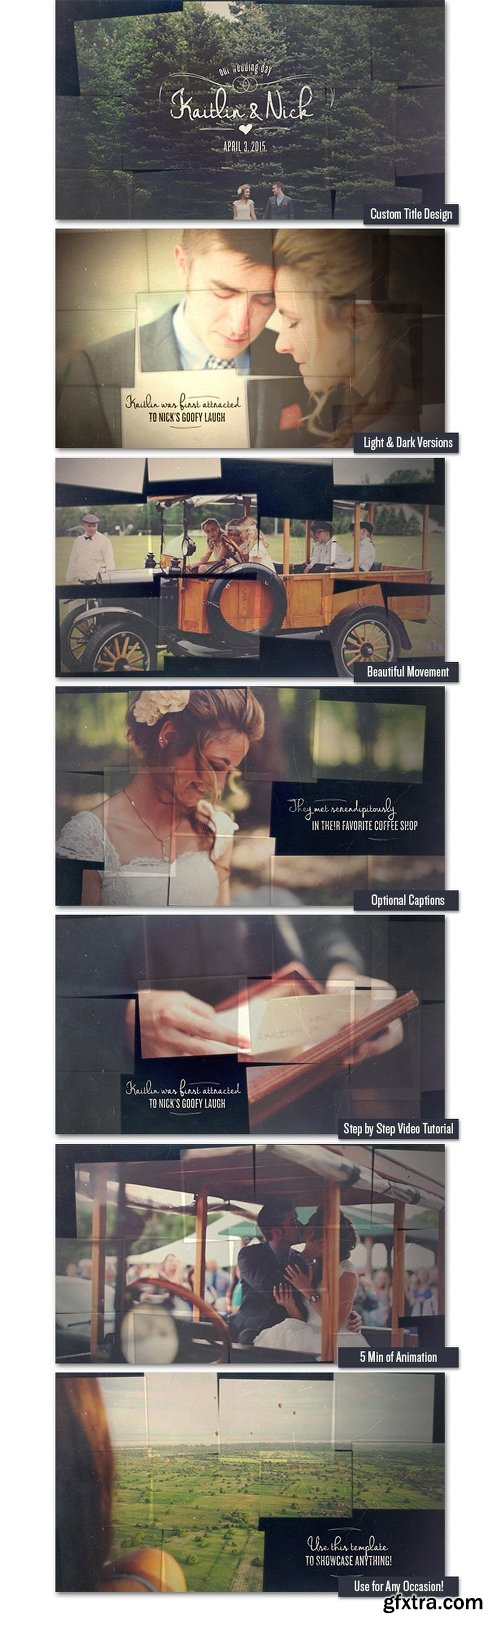 Videohive Wedding & Memory Collage 11211577